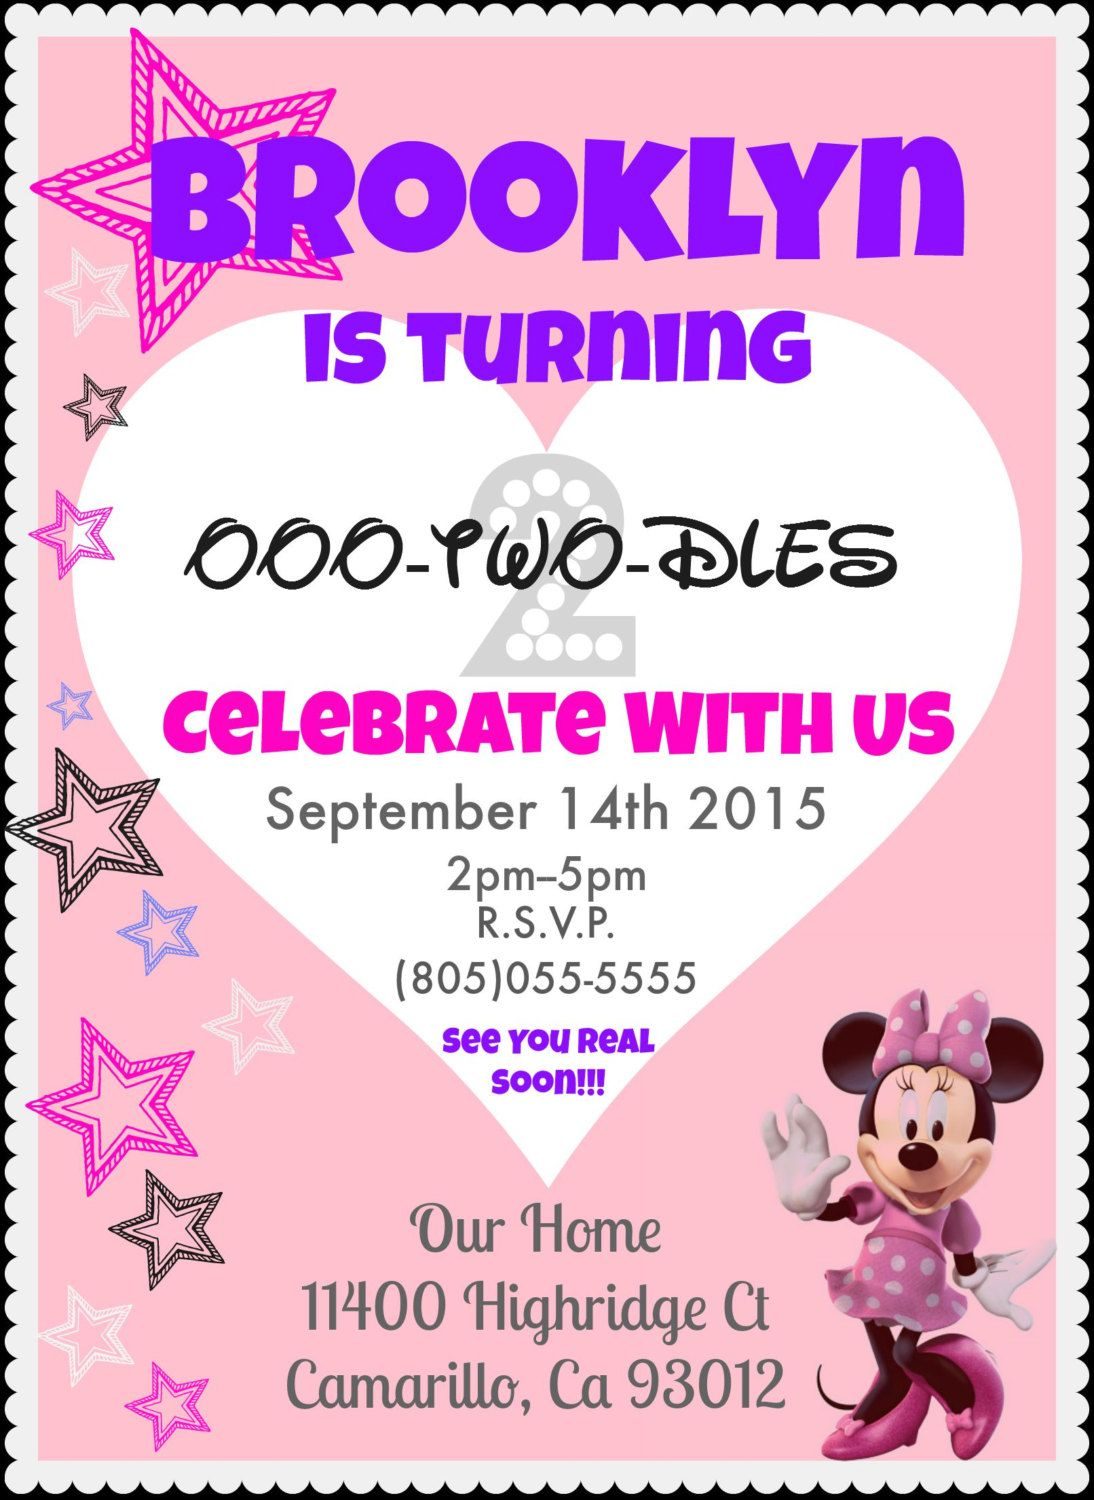 TEMPLATE DIY Minnie Mouse Birthday Invitation Invite Party 2 Year Old Girl Pink Black White Grey Purple Instant Download And Print By TheFunType On Etsy